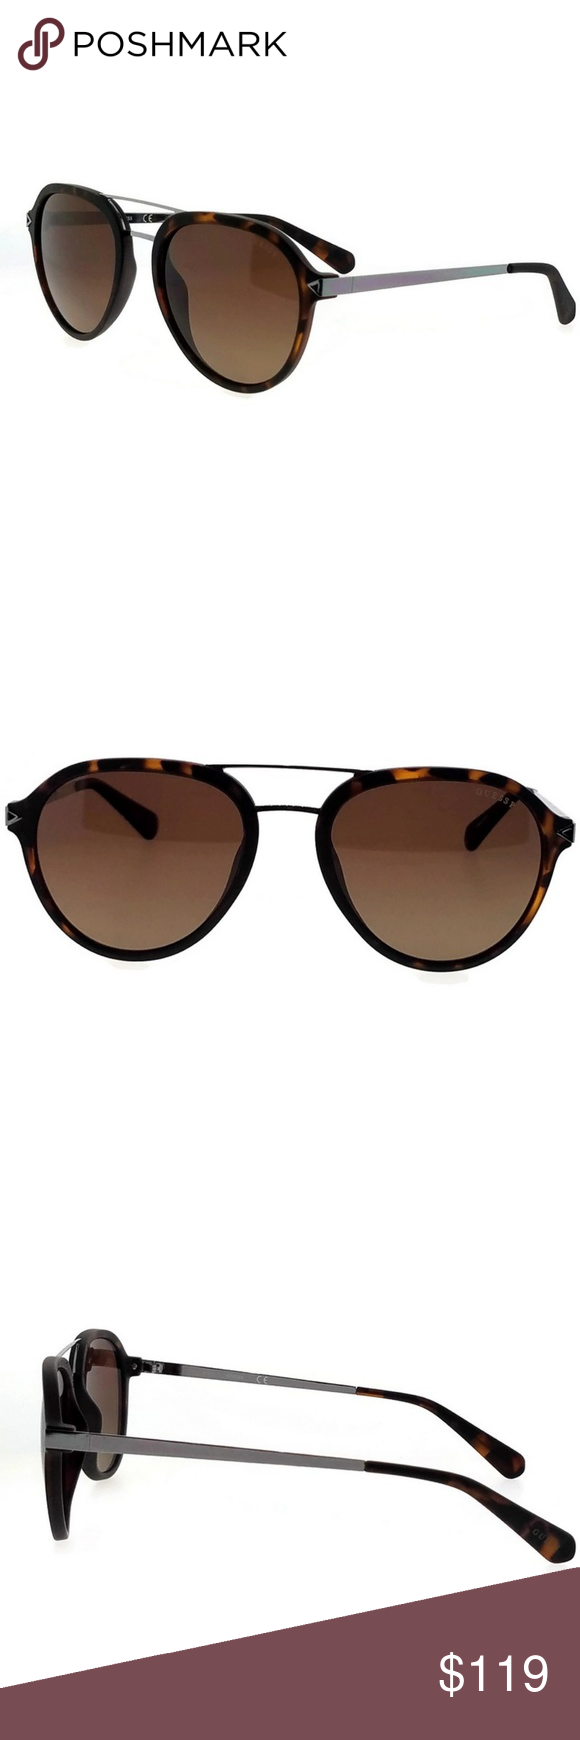 Guess Gu6924 52h 54 Sunglasses Sunglasses Sunglasses Accessories Guess